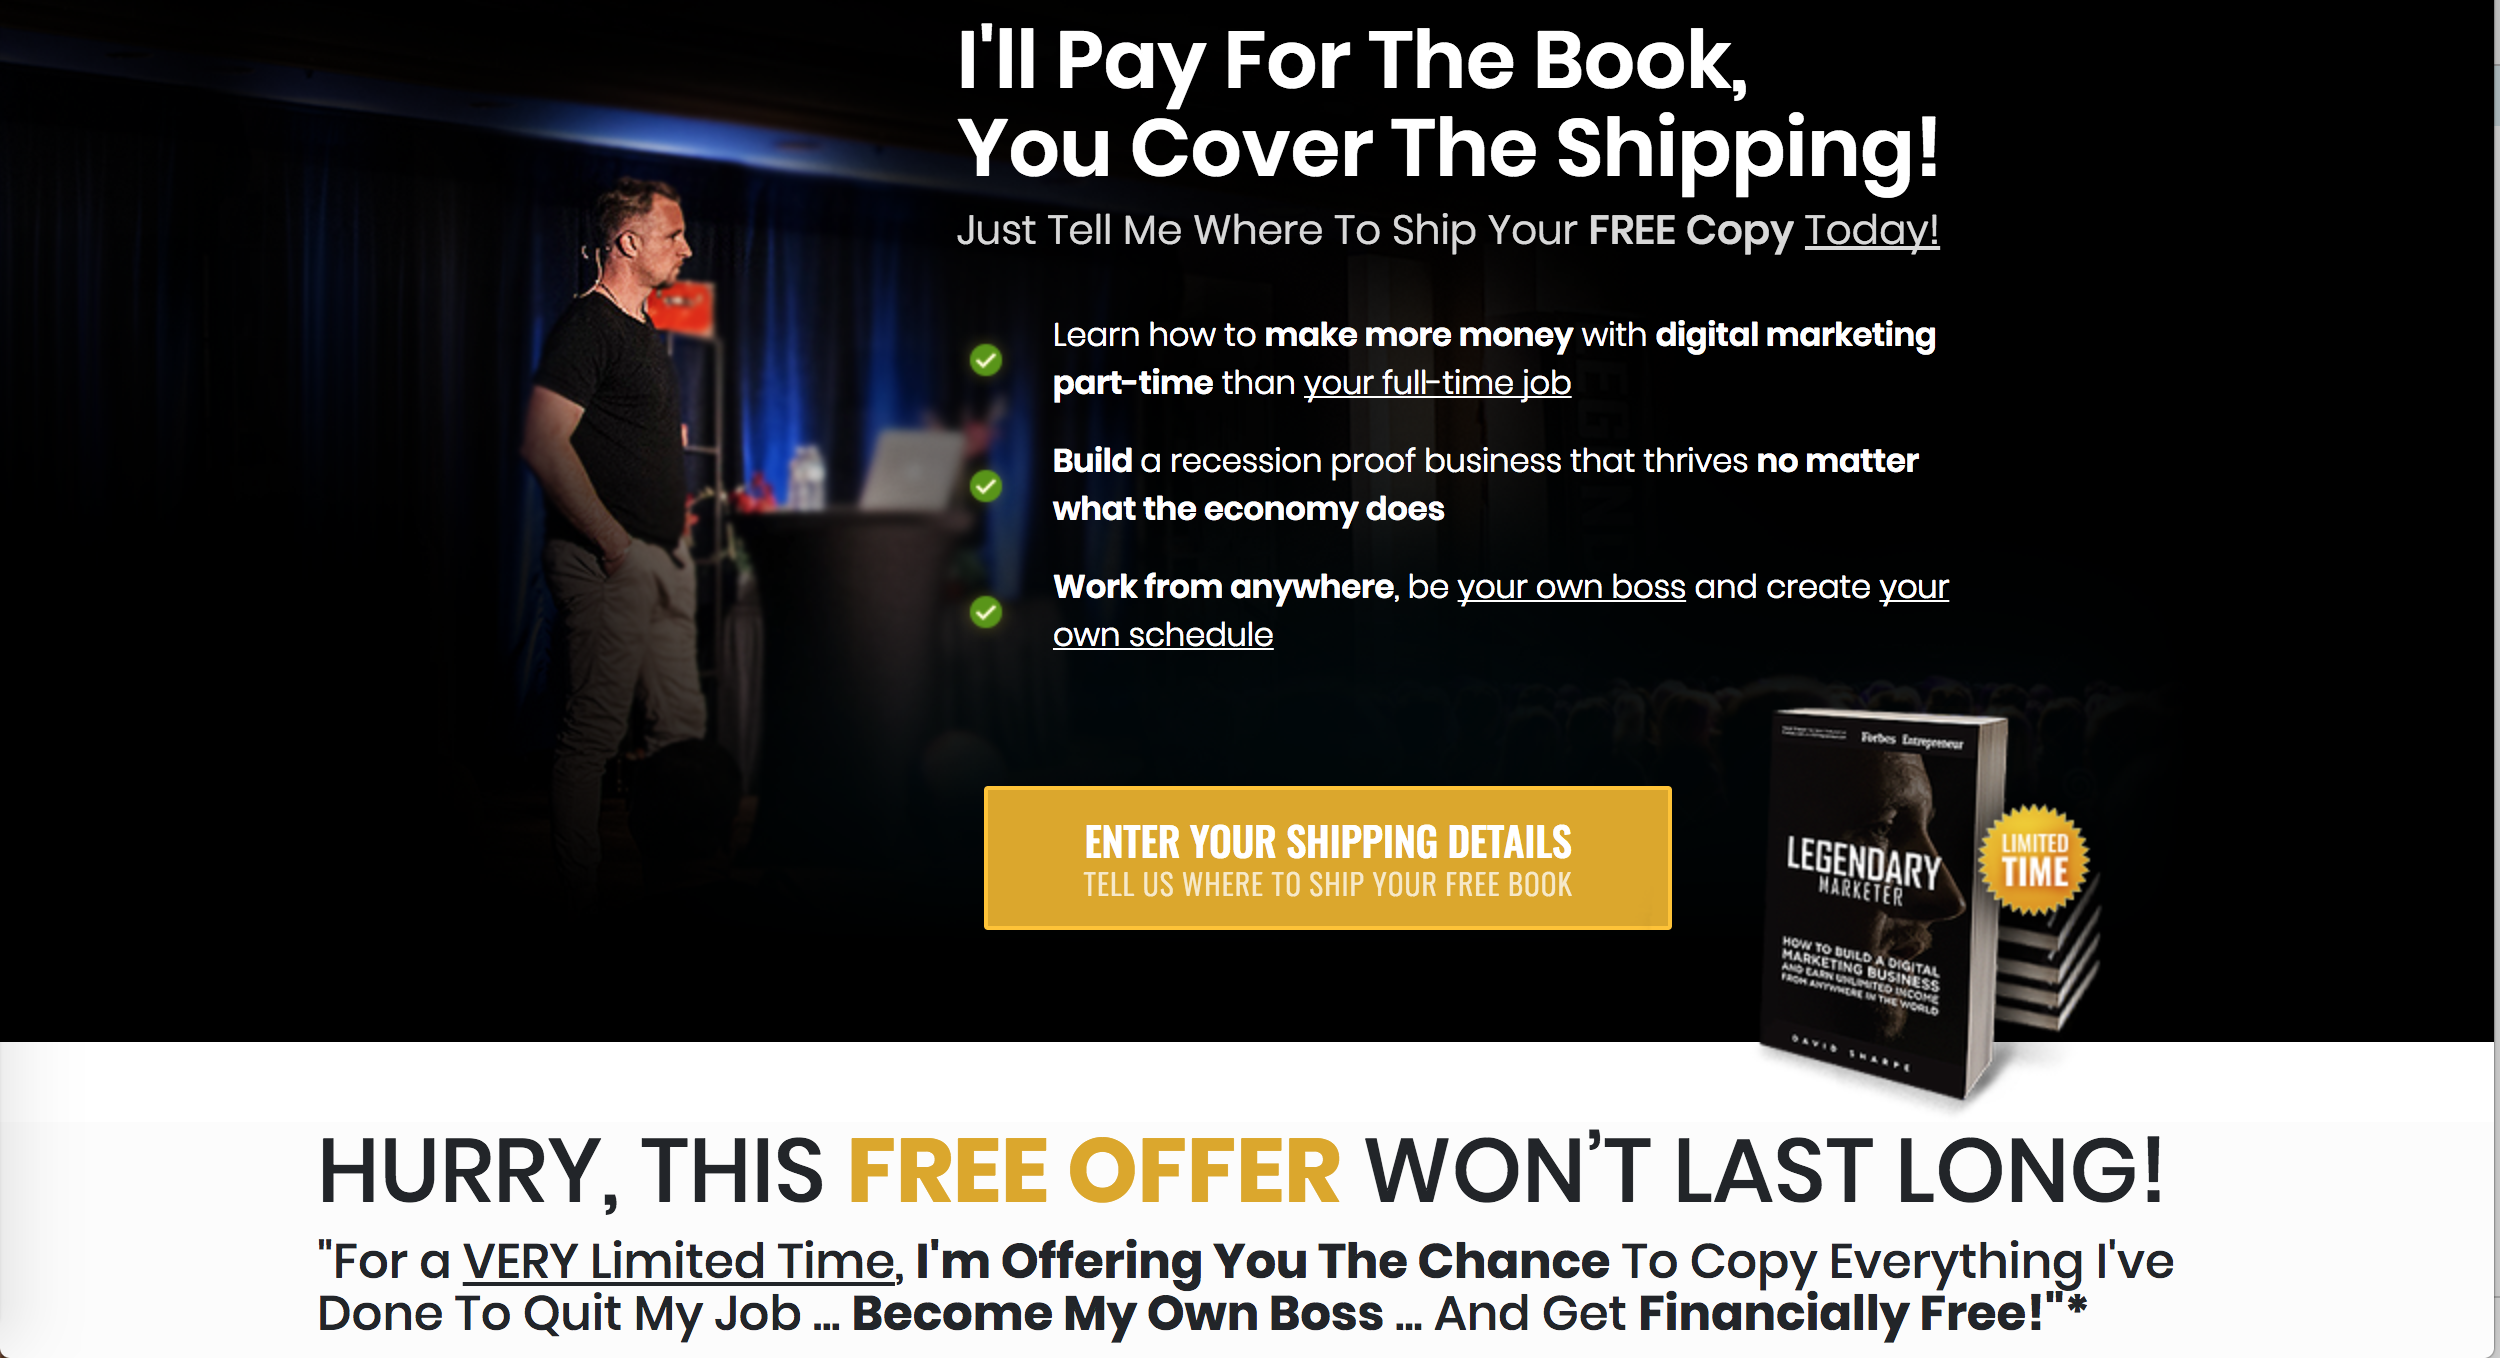 Buy Legendary Marketer Internet Marketing Program  For Sale By Owner